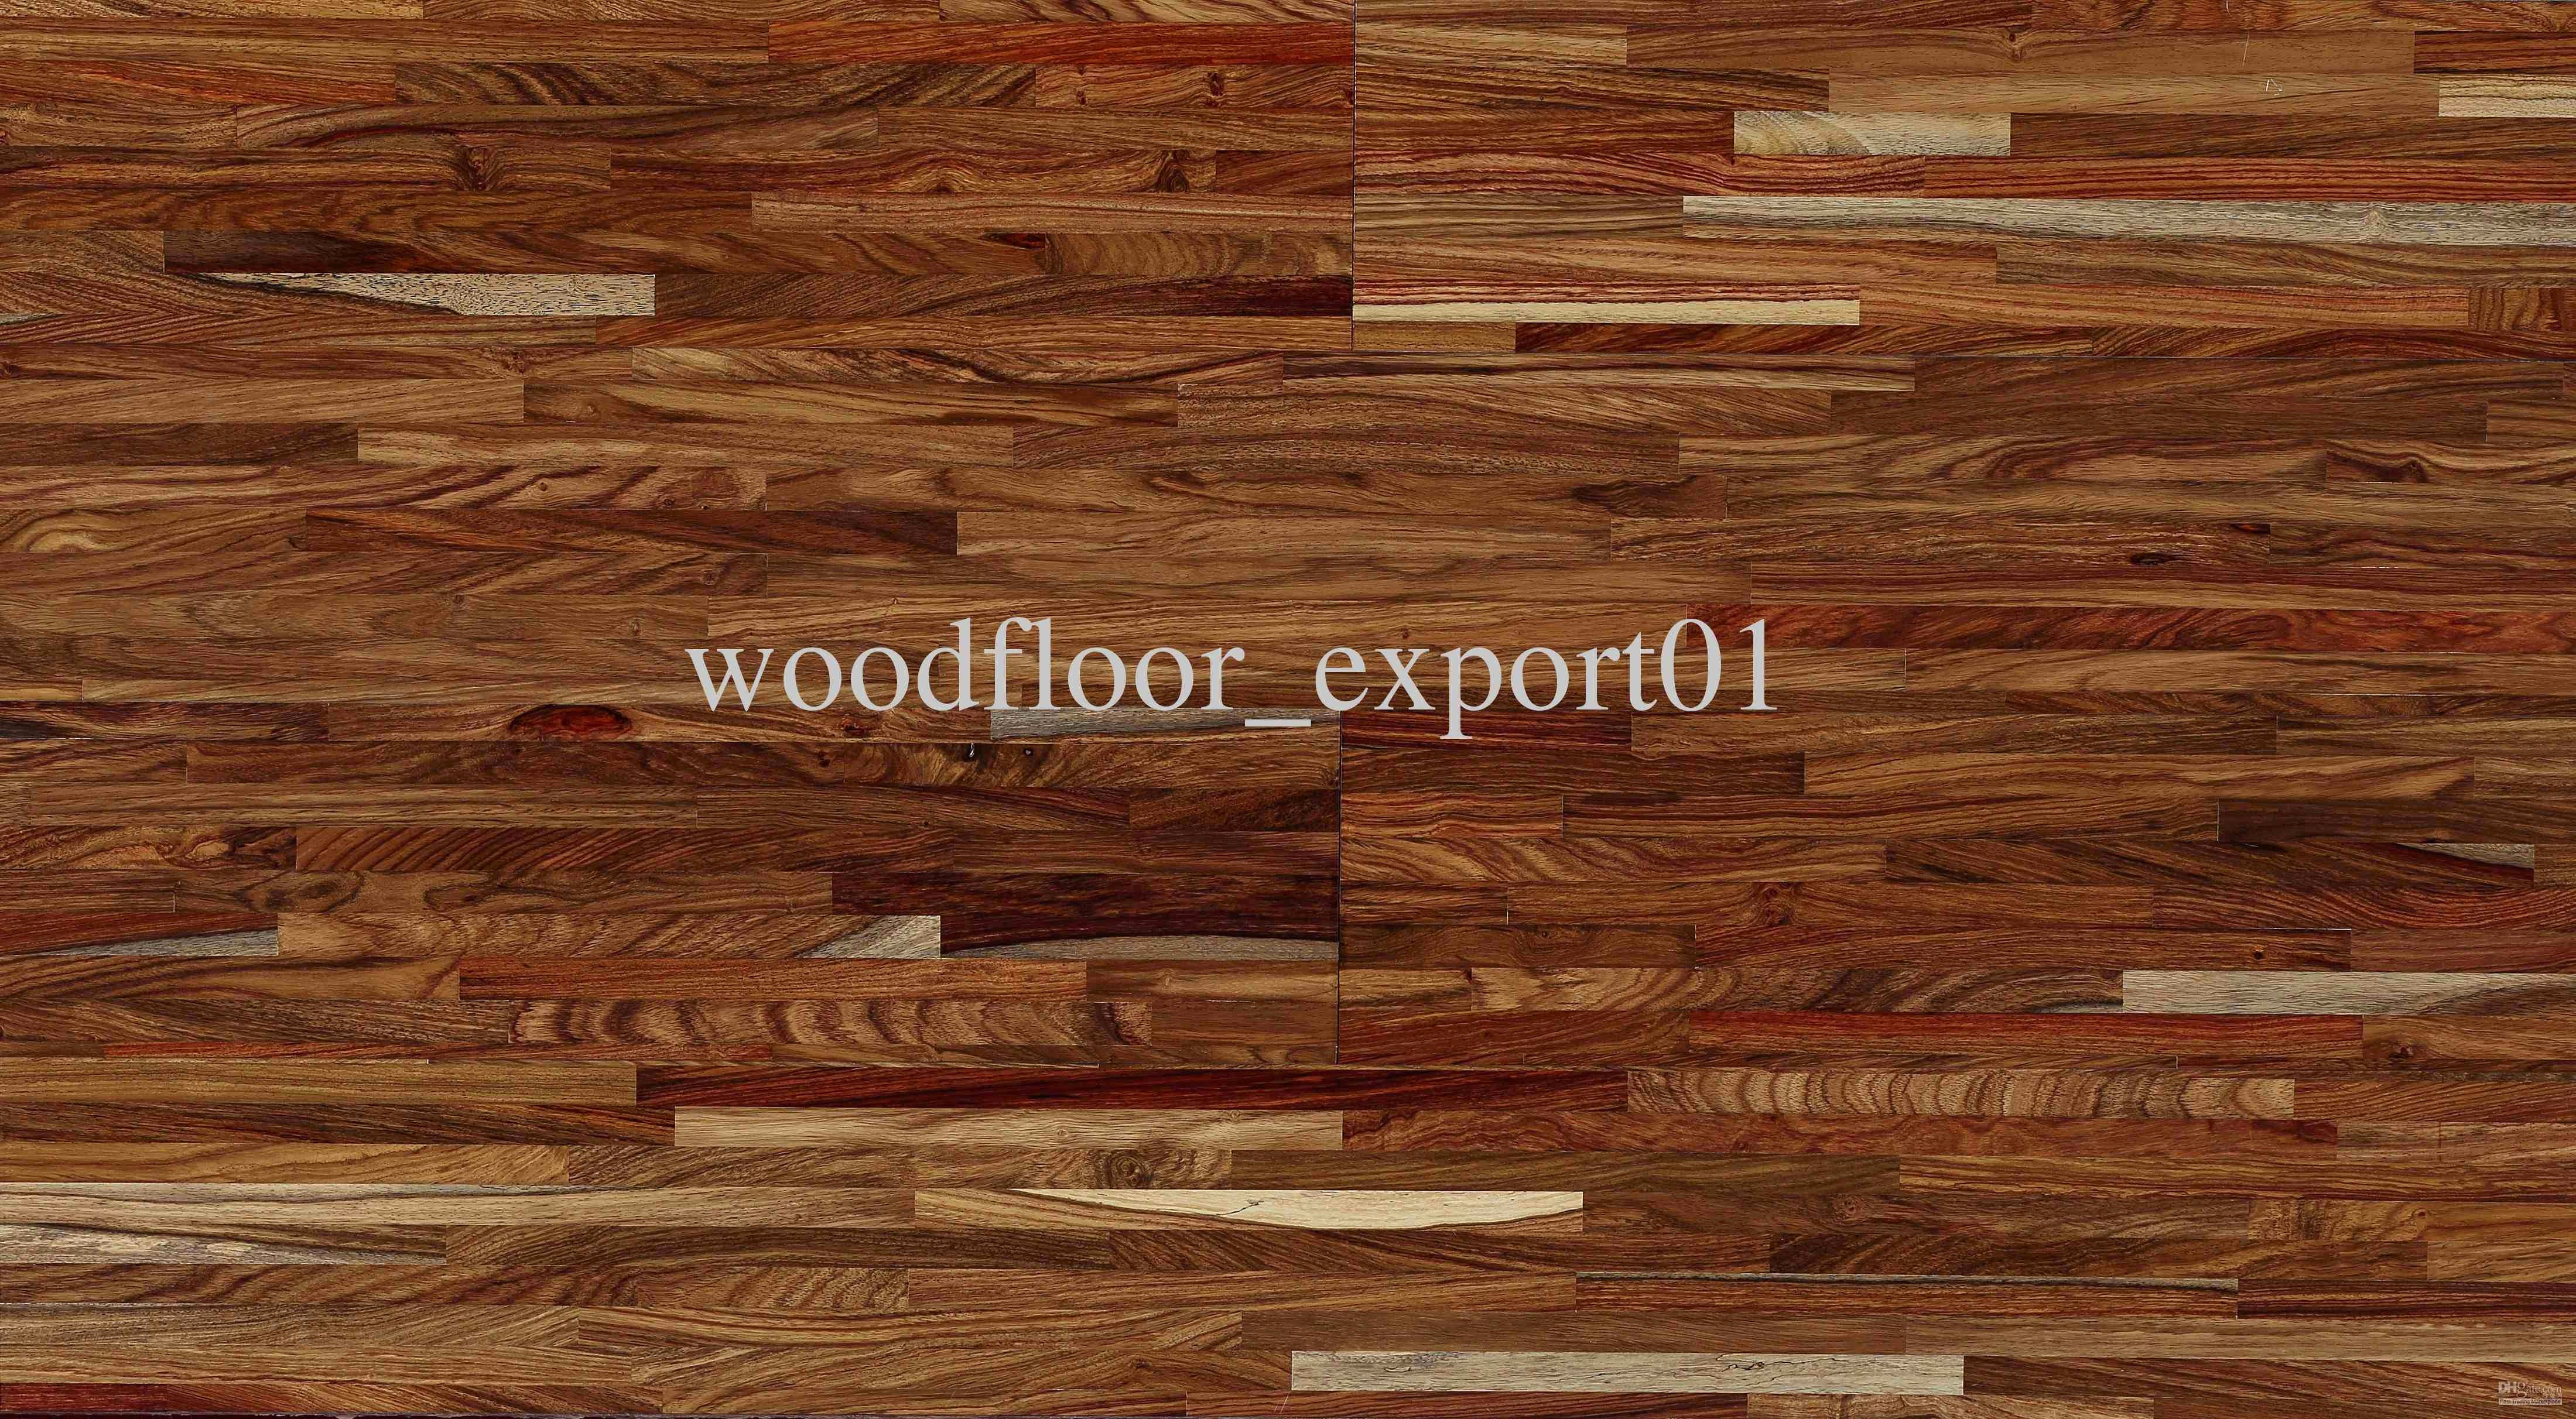 dark prefinished hardwood flooring of 17 best of install hardwood floor image dizpos com regarding install hardwood floor best of 50 unique hardwood floor installers near me graphics 50 s images